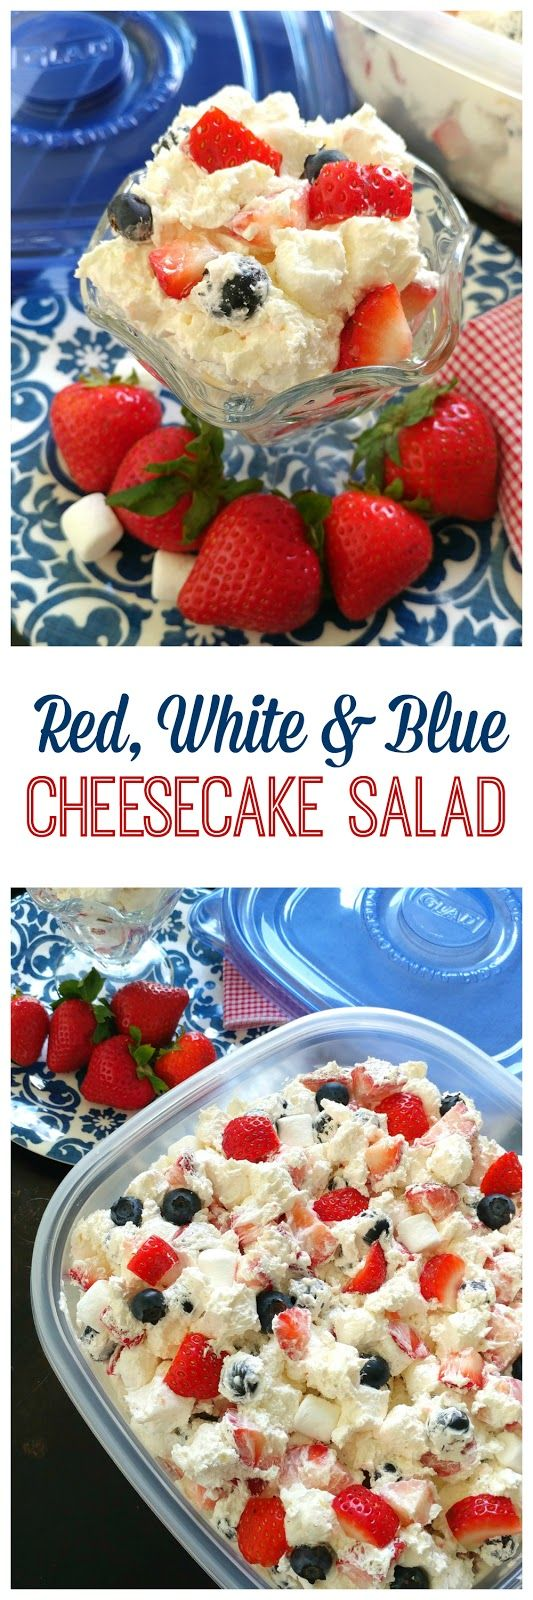 Red, White & Blue Cheesecake Salad!